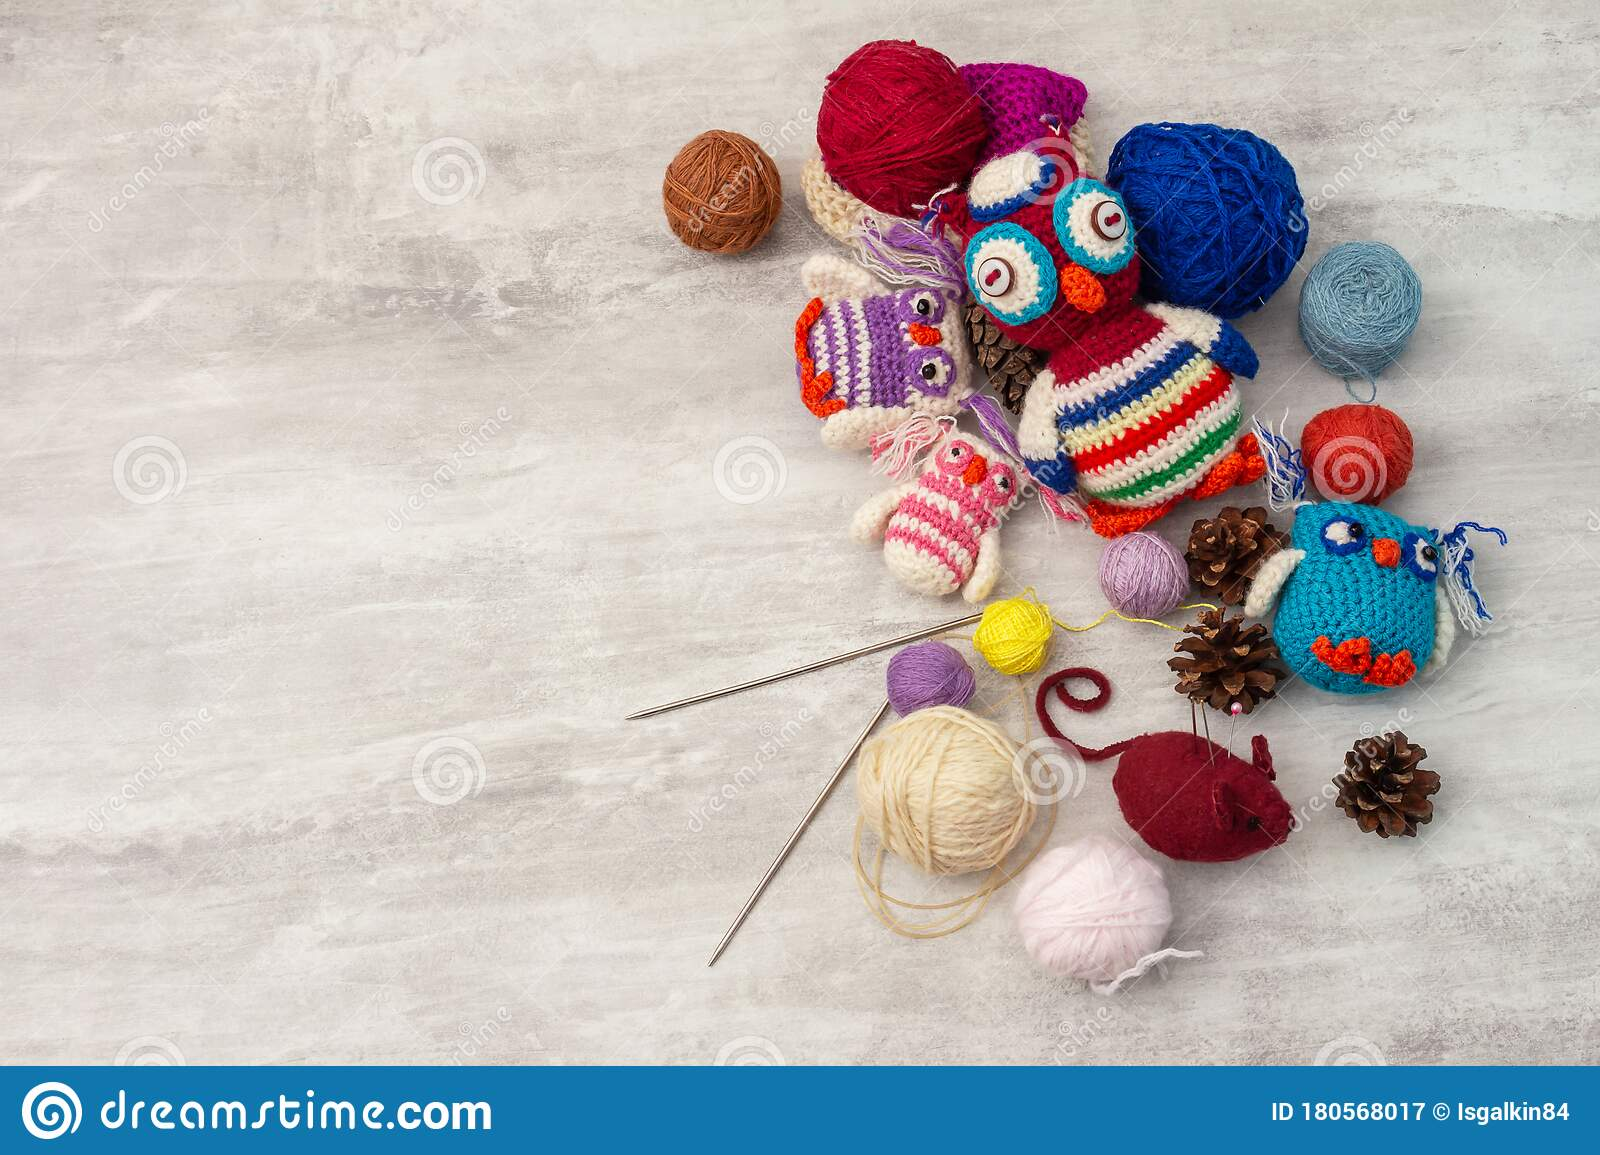 Handmade Knitted Funny Toy Owls With Skeins Of Thread And Yarn Knitting Needles And Pins On The Table Close Up And Copy Space Stock Image Image Of Handmade Wool 180568017